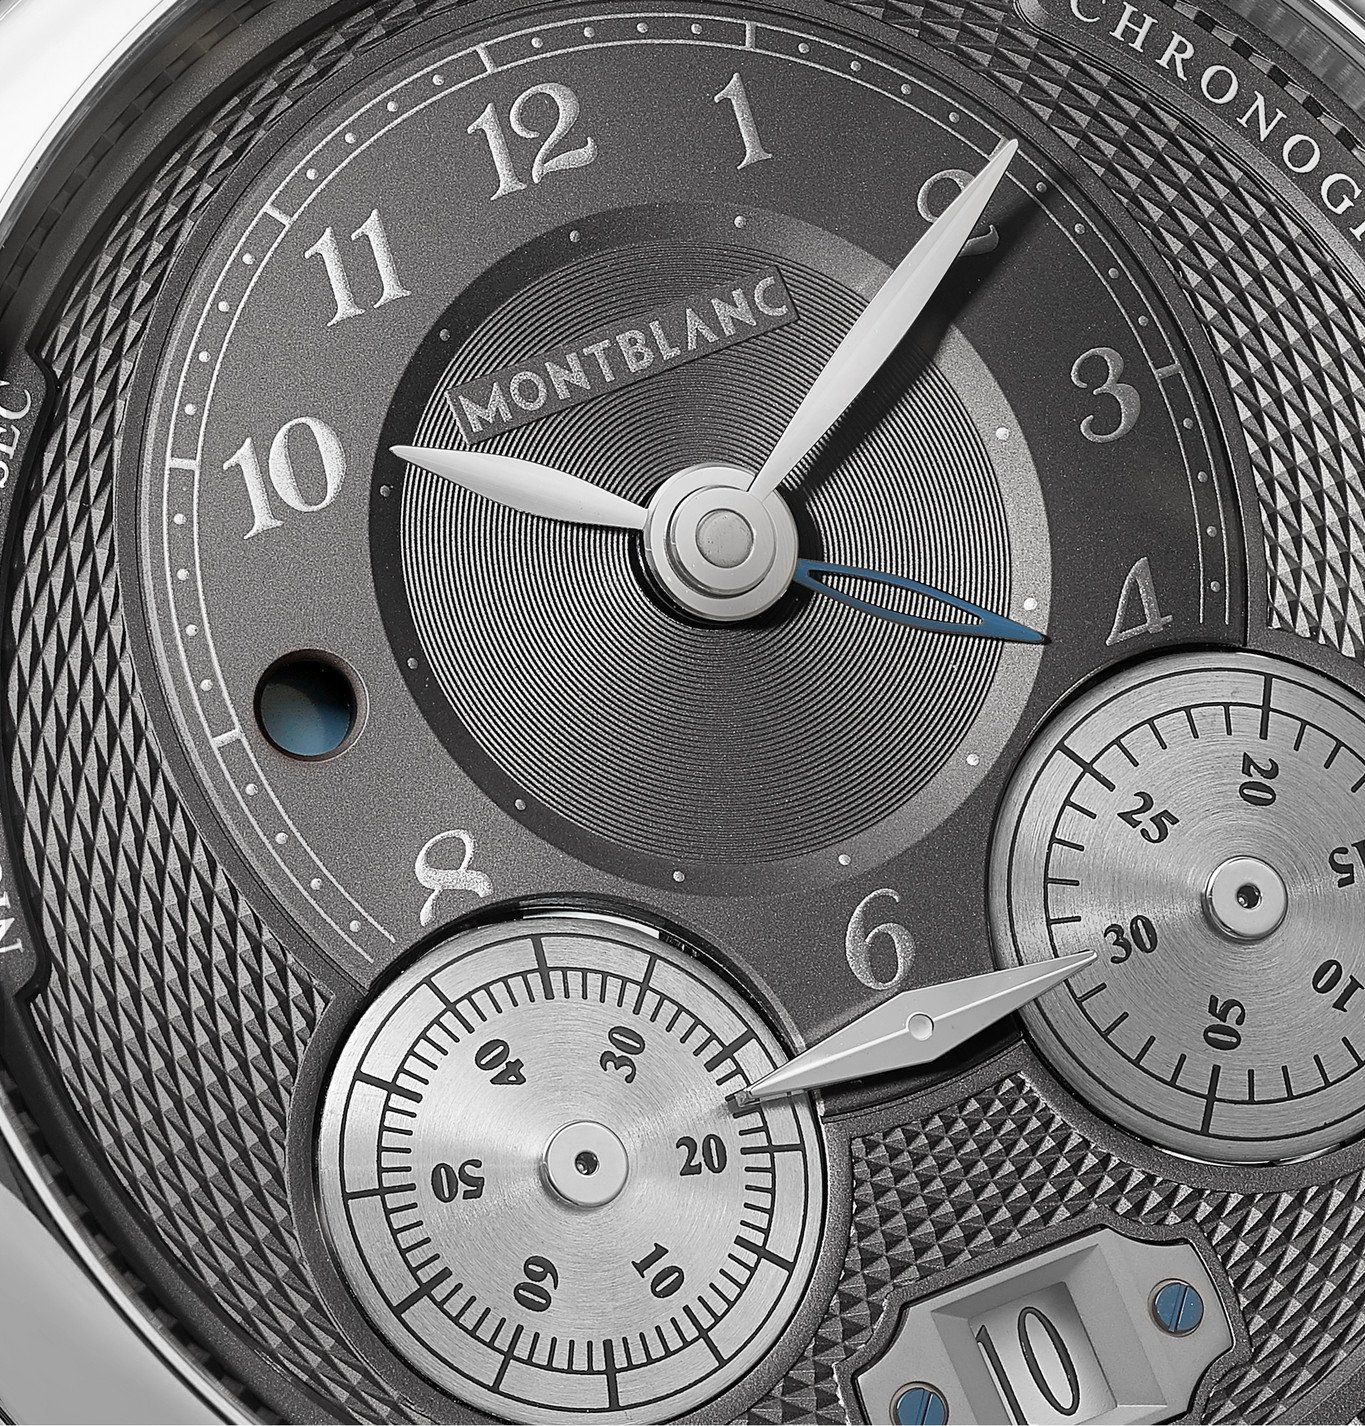 Montblanc - Star Legacy Nicolas Rieussec Automatic Chronograph 44mm Stainless Steel and Alligator Watch, Ref. No. 119954 - Unknown